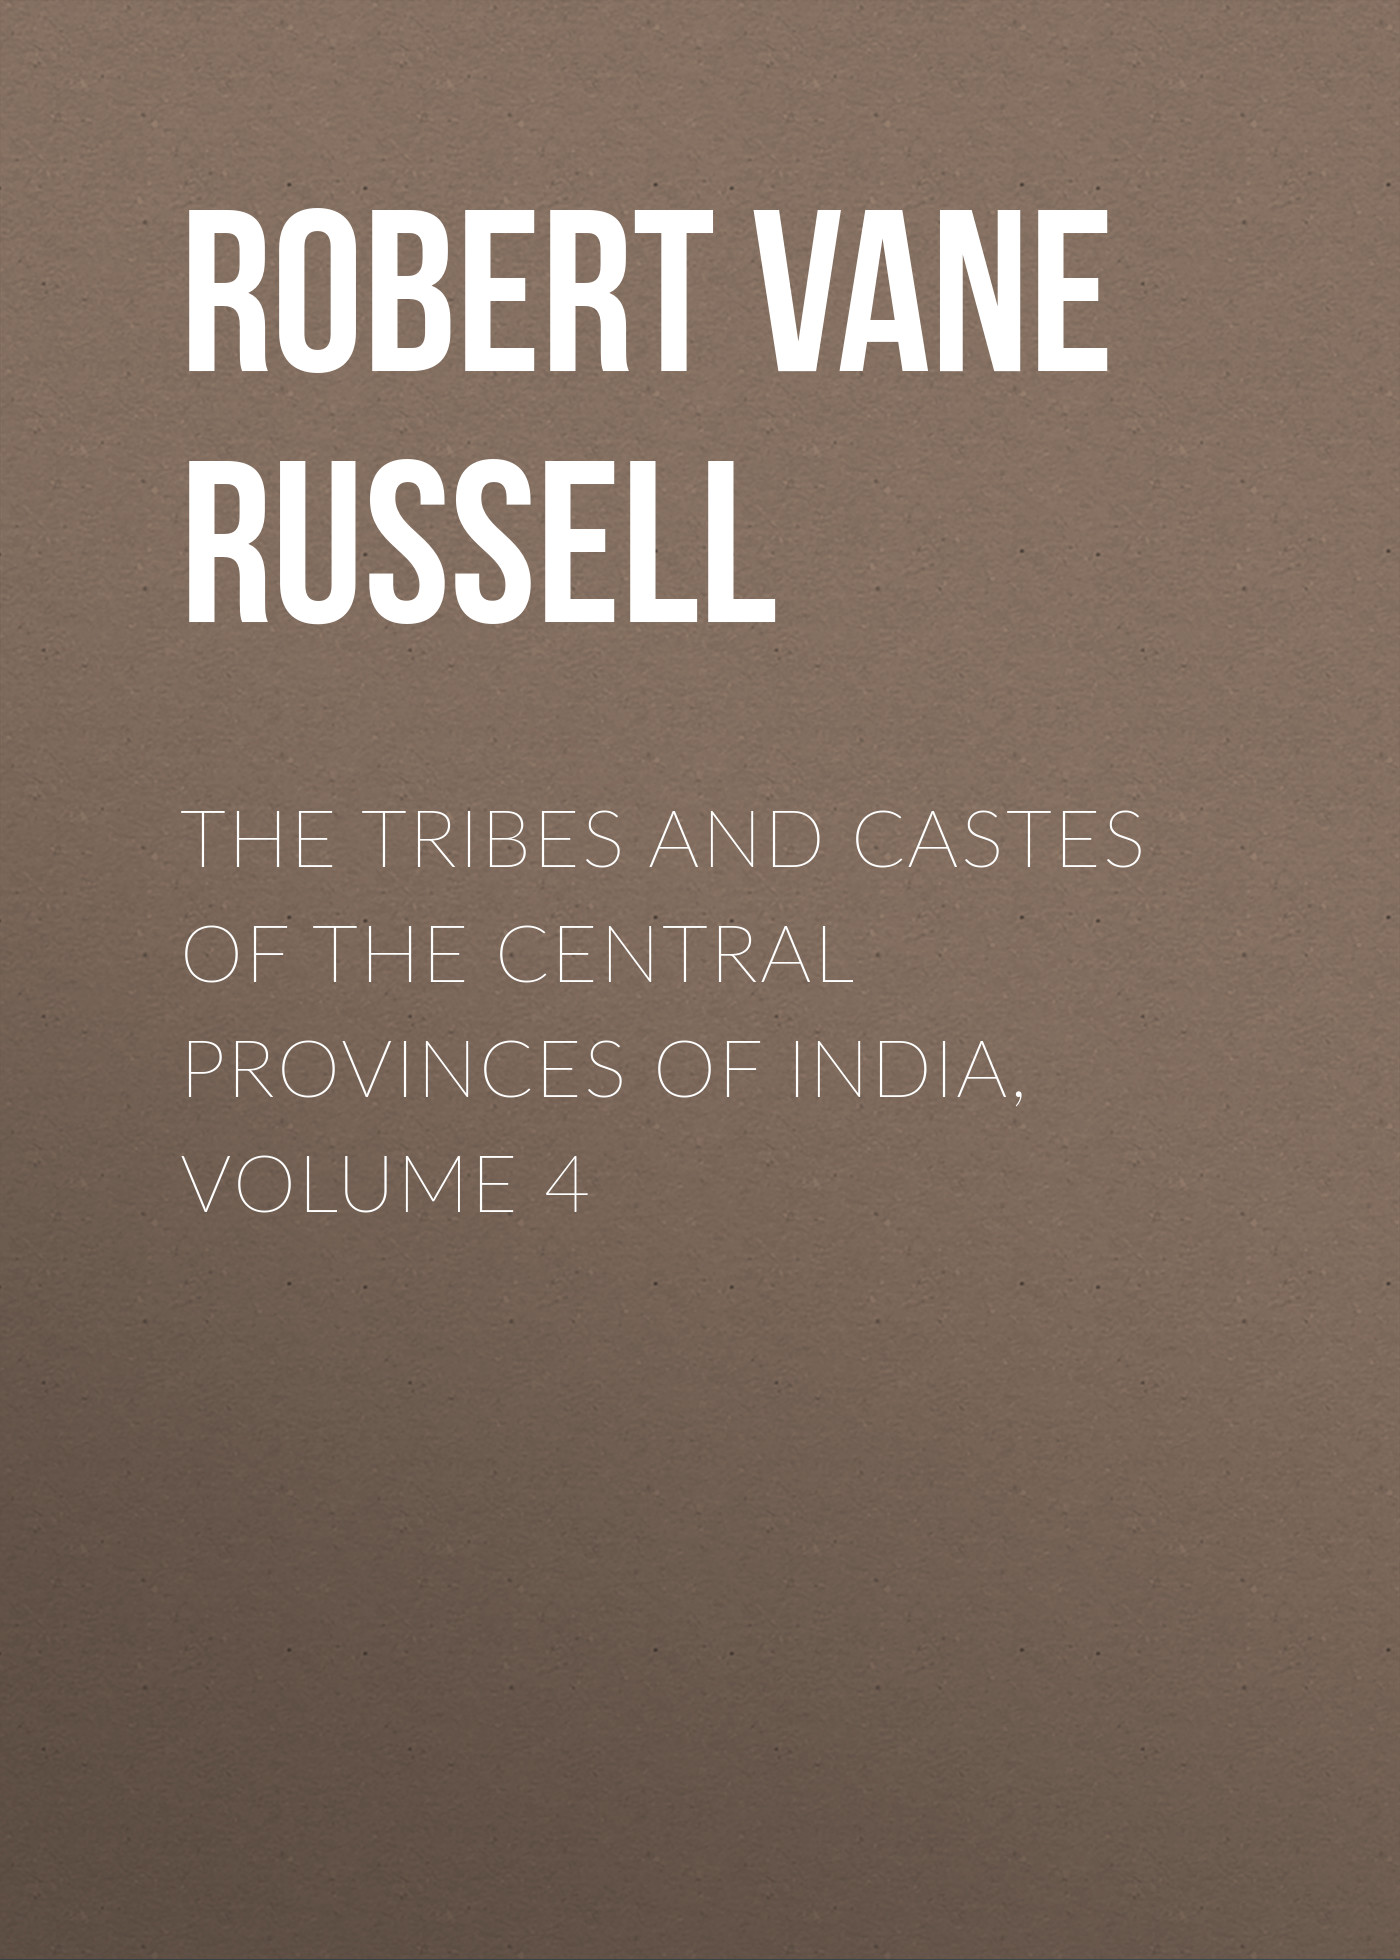 Robert Vane Russell The Tribes and Castes of the Central Provinces of India, Volume 4